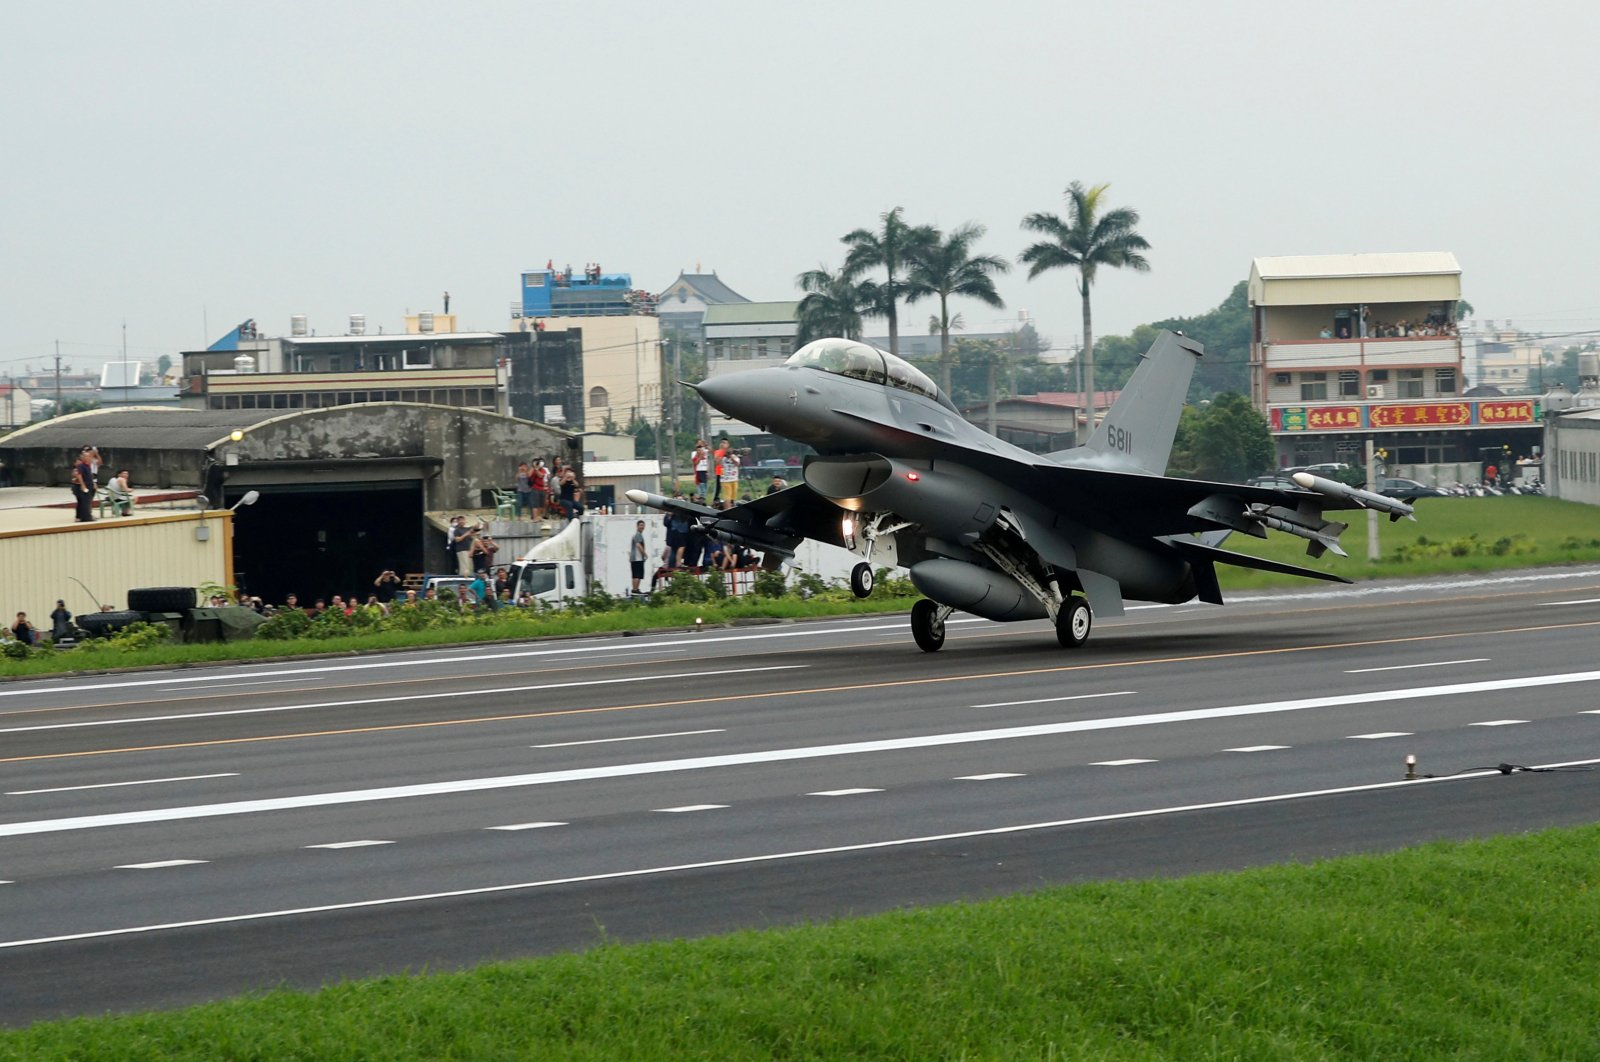 A Republic of China Air Force (ROCAF) F-16V fighter jet lands on a highway used as an emergency runway during the Han Kuang military exercise simulating the China's People's Liberation Army (PLA) invading the island, in Changhua, Taiwan, May 28, 2019. (Reuters Photo)